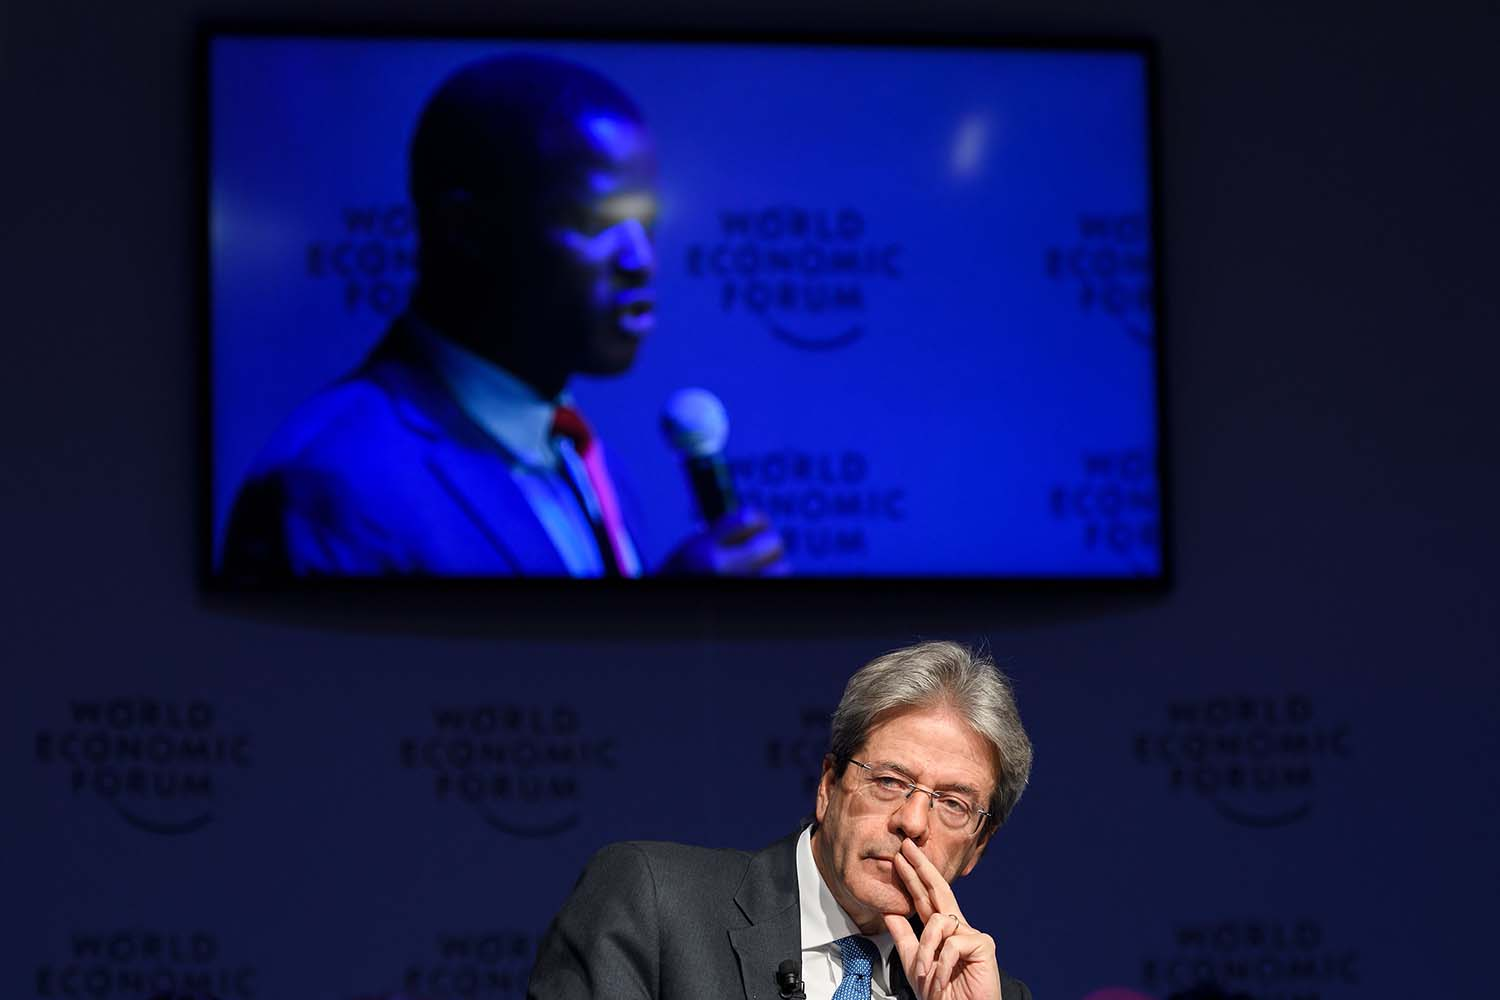 Then-Italian Prime Minister Paolo Gentiloni listens to a refugee seen on the screen behind him during a session on mass migration across the Mediterranean during the annual World Economic Forum in Davos, Switzerland, on Jan. 24, 2018. FABRICE COFFRINI/AFP via Getty Images